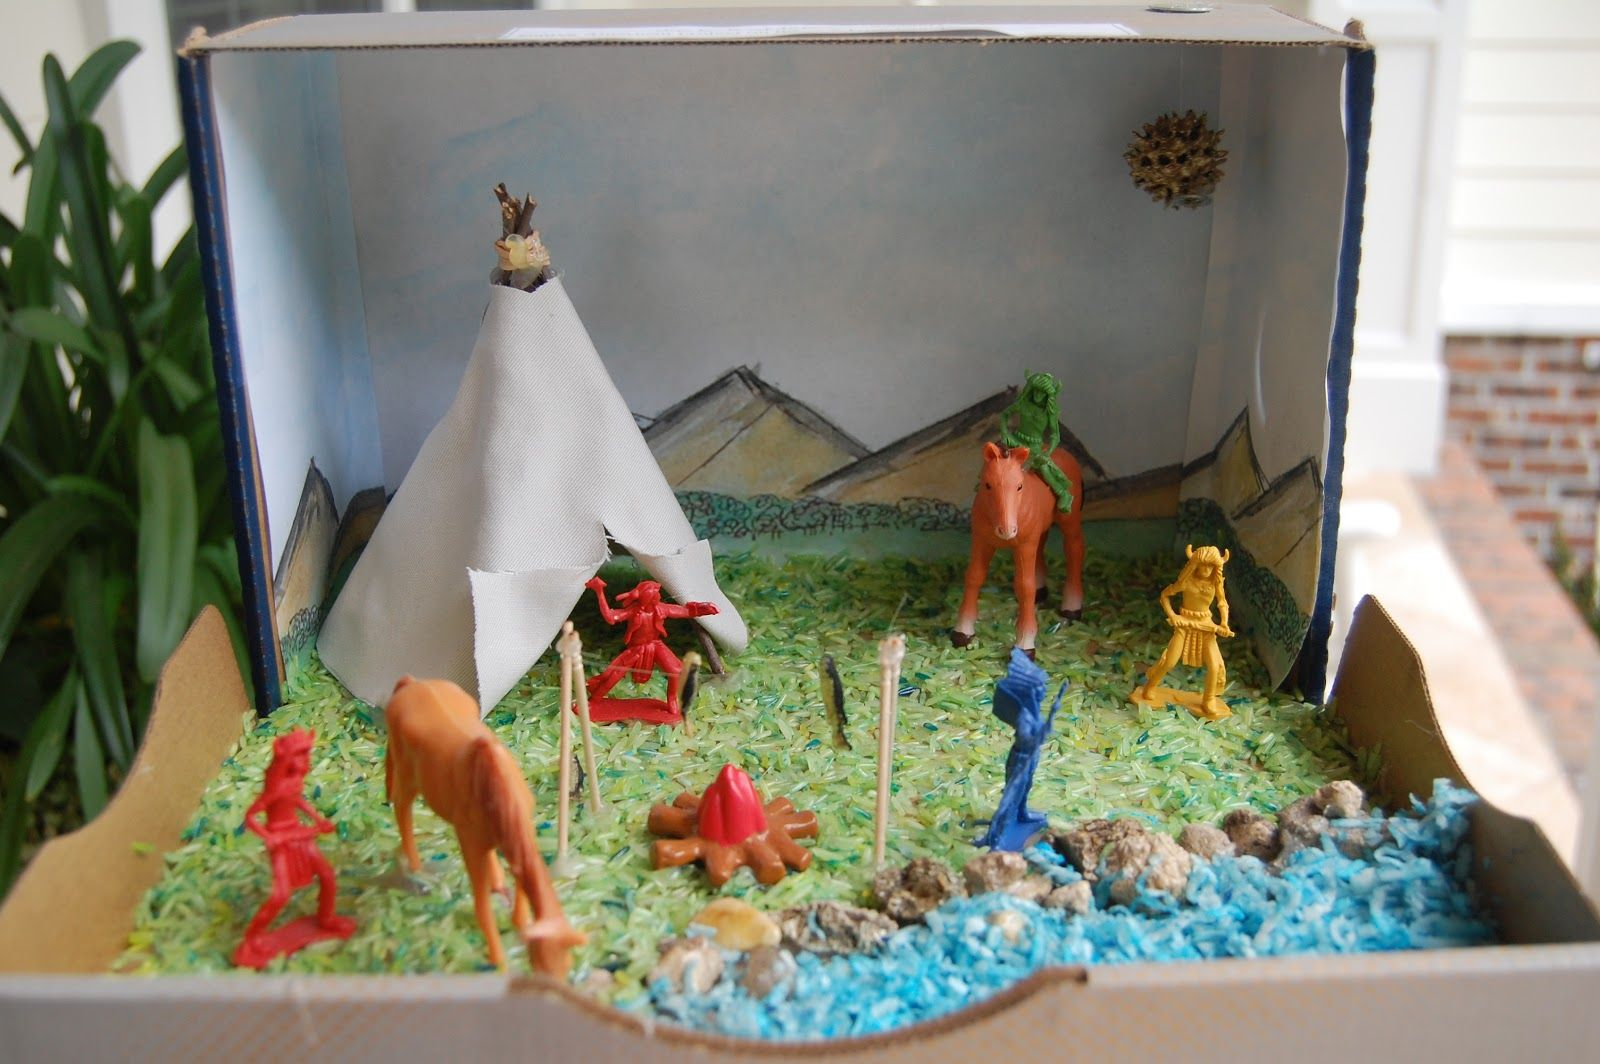 She who delights shoebox dioramas projects pinterest for What crafts did the blackfoot tribe make